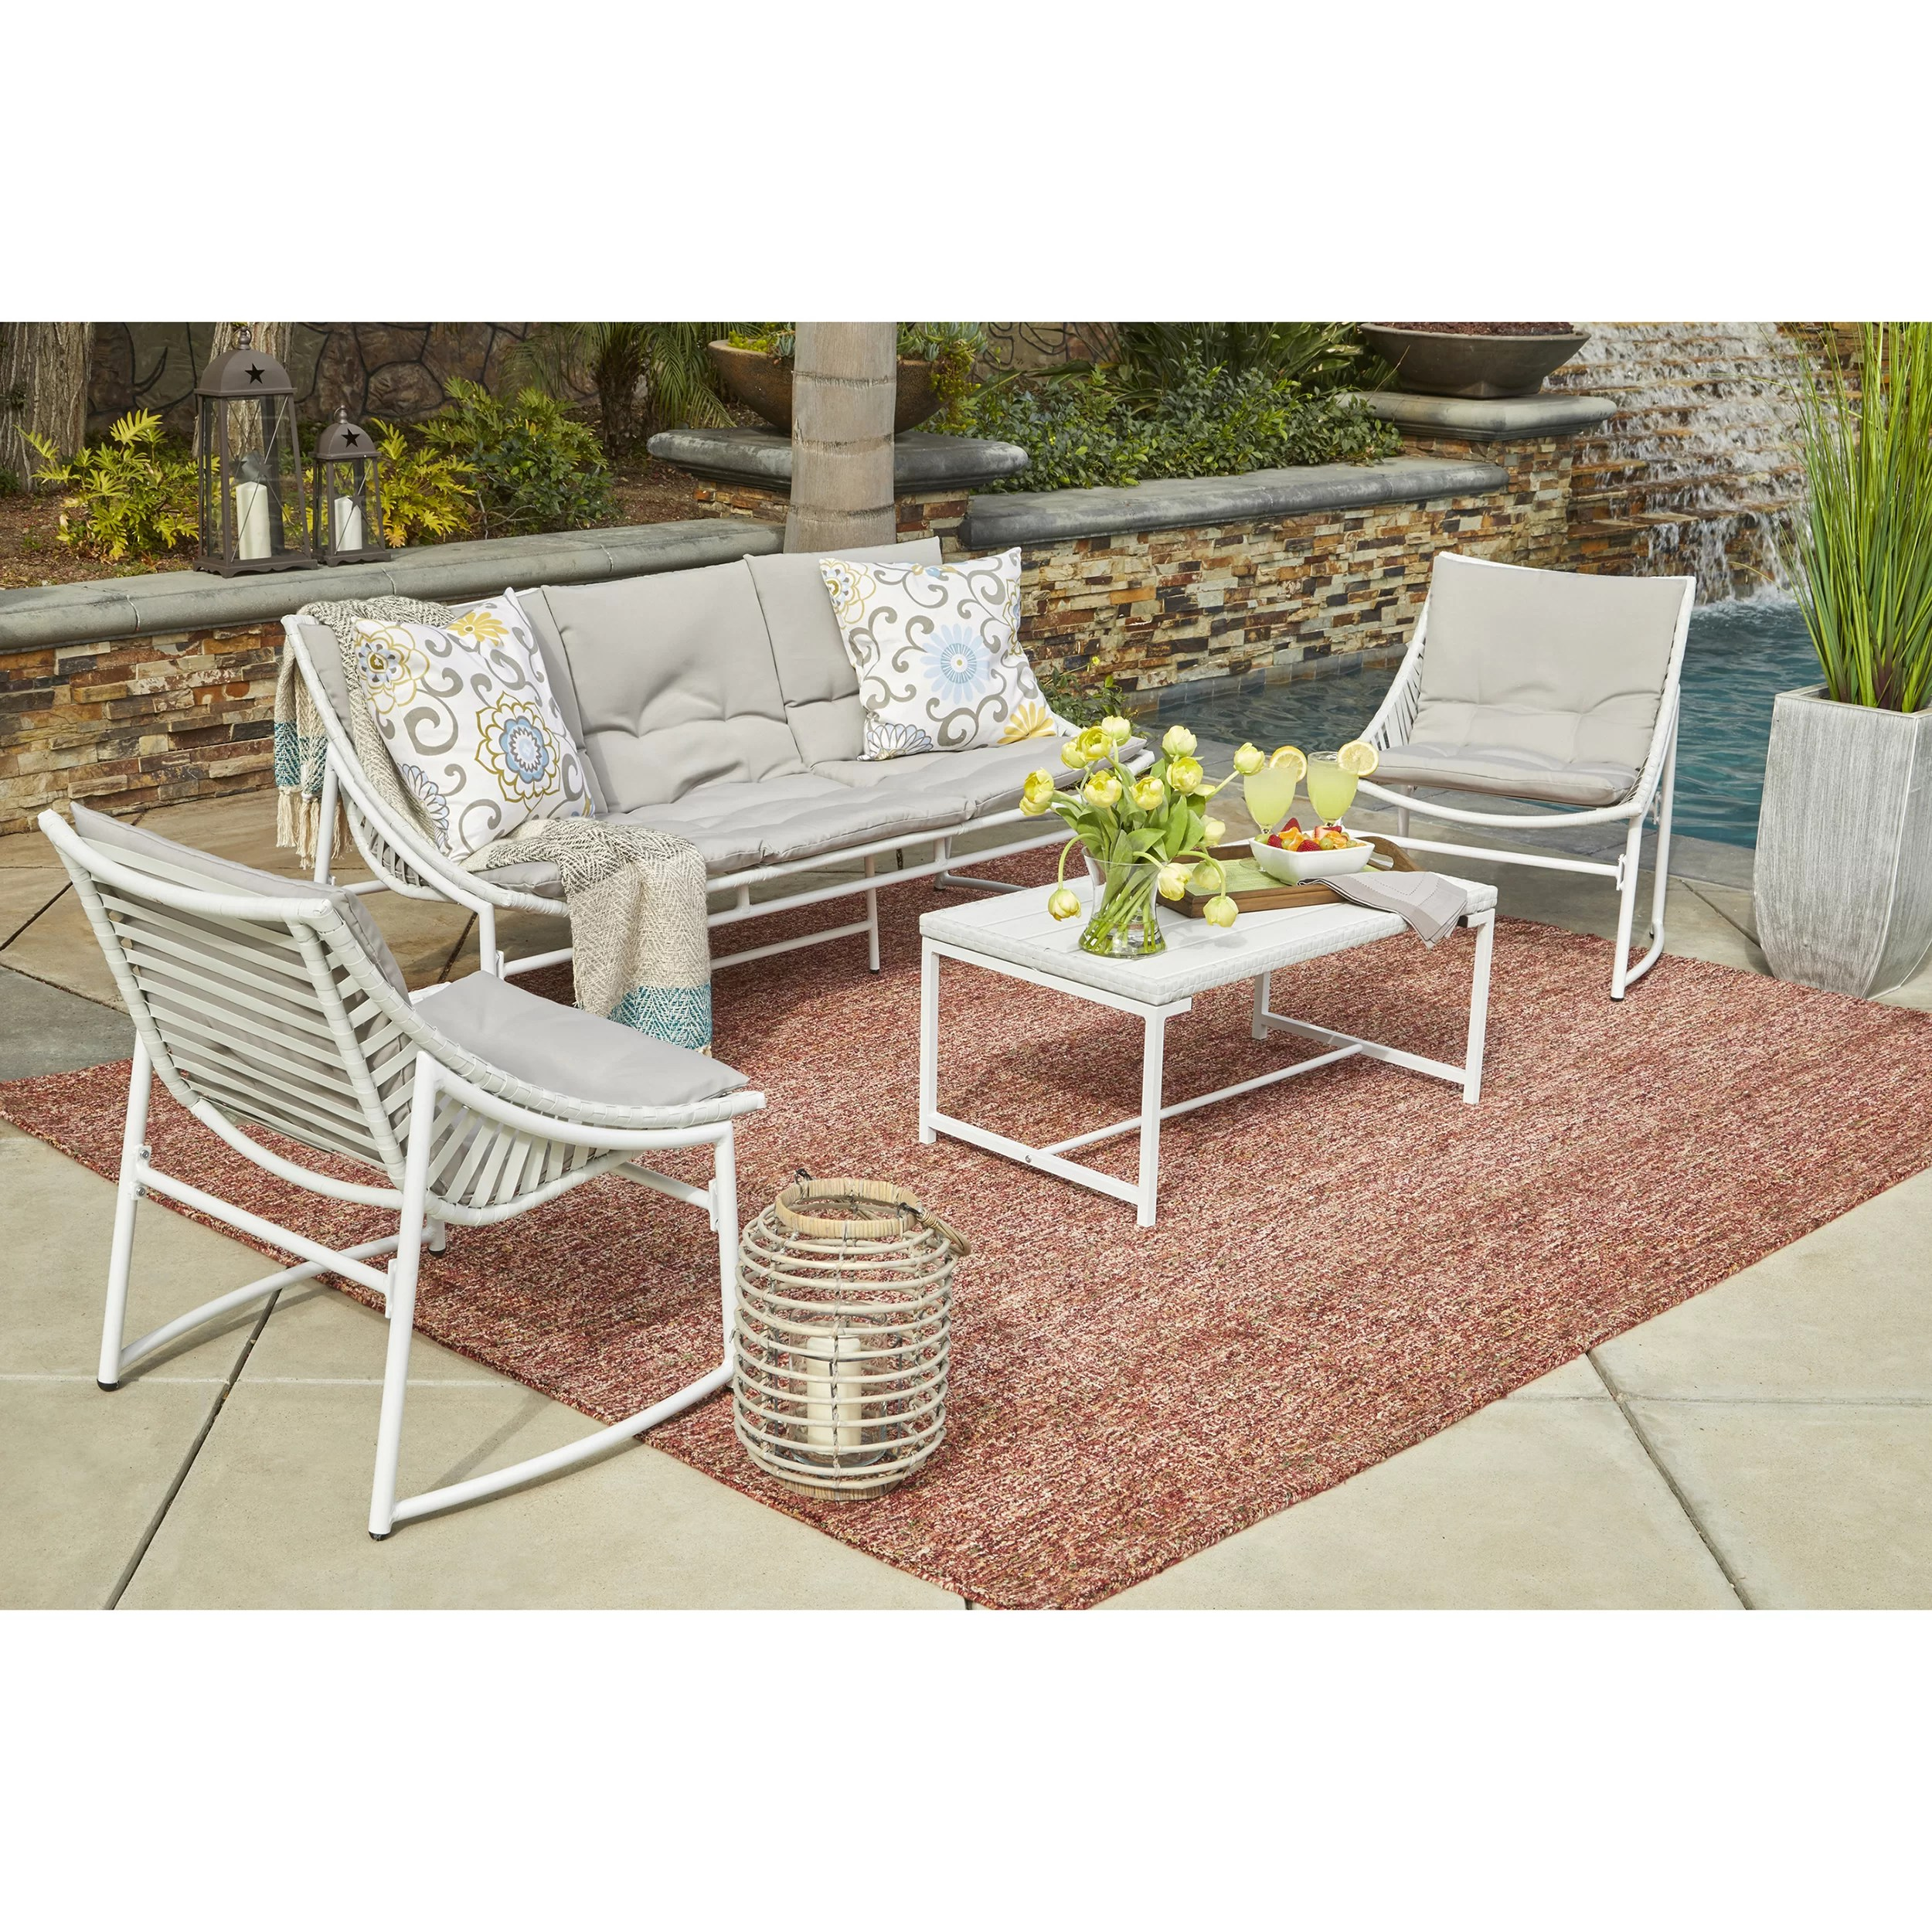 Baptist 6 Piece Rattan Sofa Set With Cushions Wrought Studio Crick 4 Piece Sofa Set With Cushions